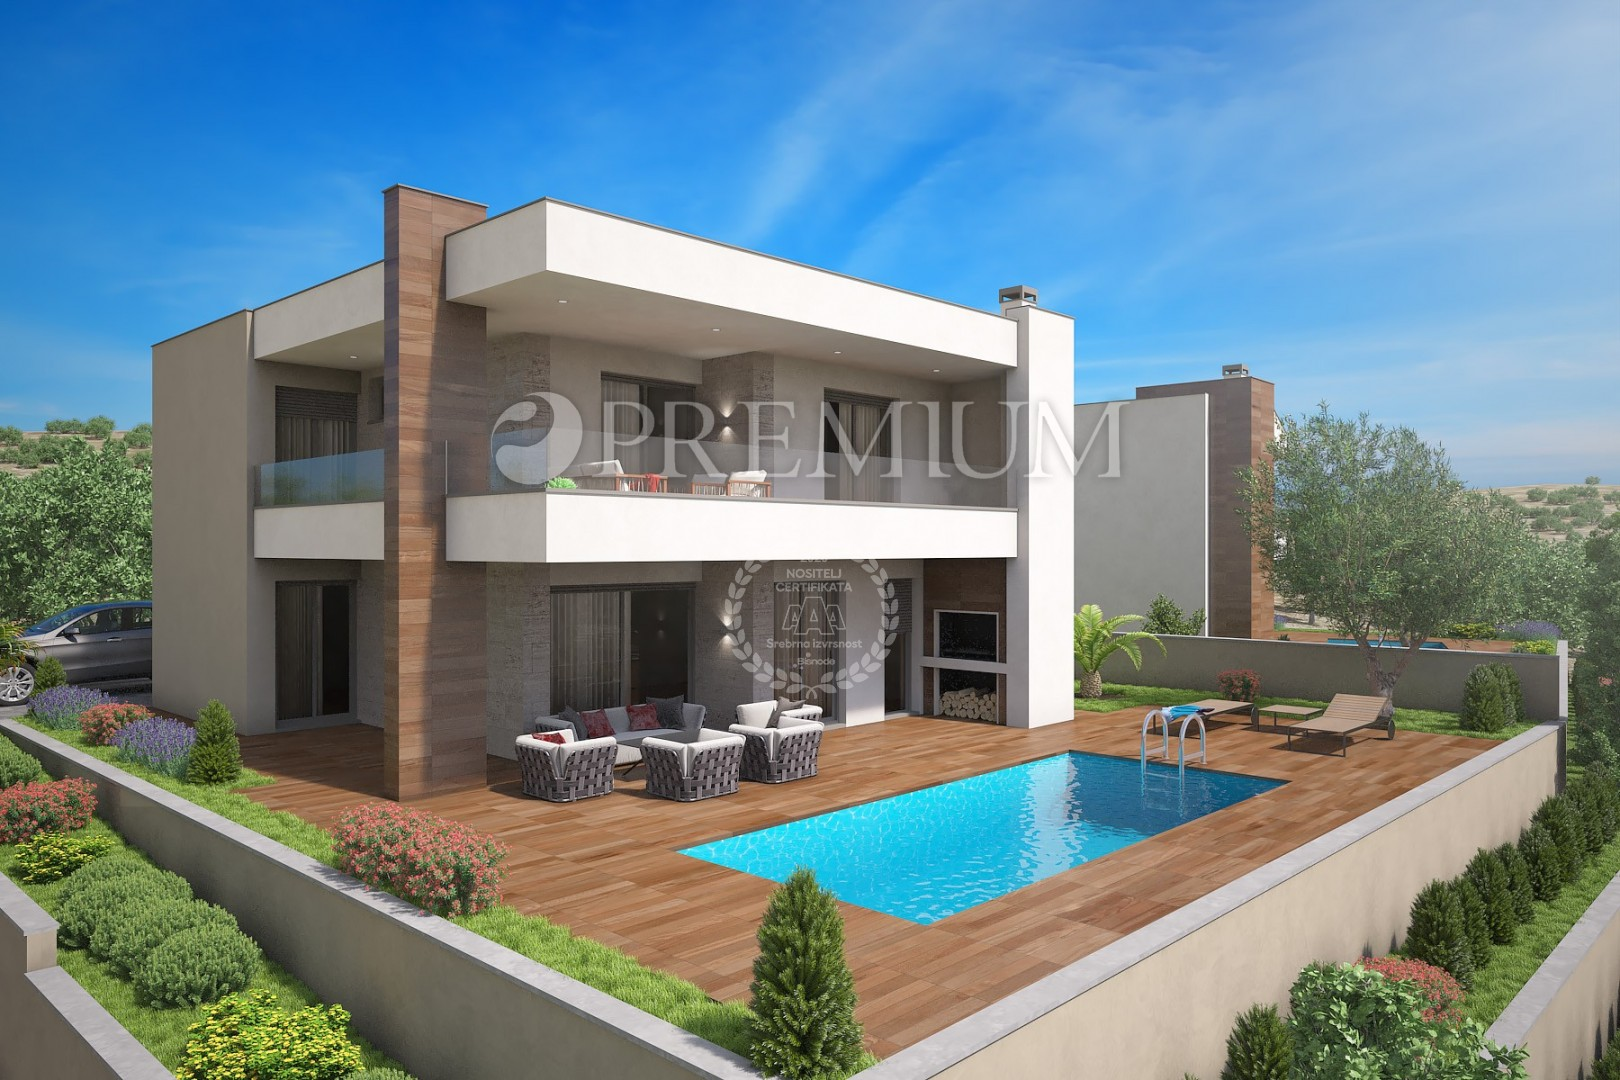 Façades Des Villas Modernes krk, sale, detached house with swimming pool and spacious